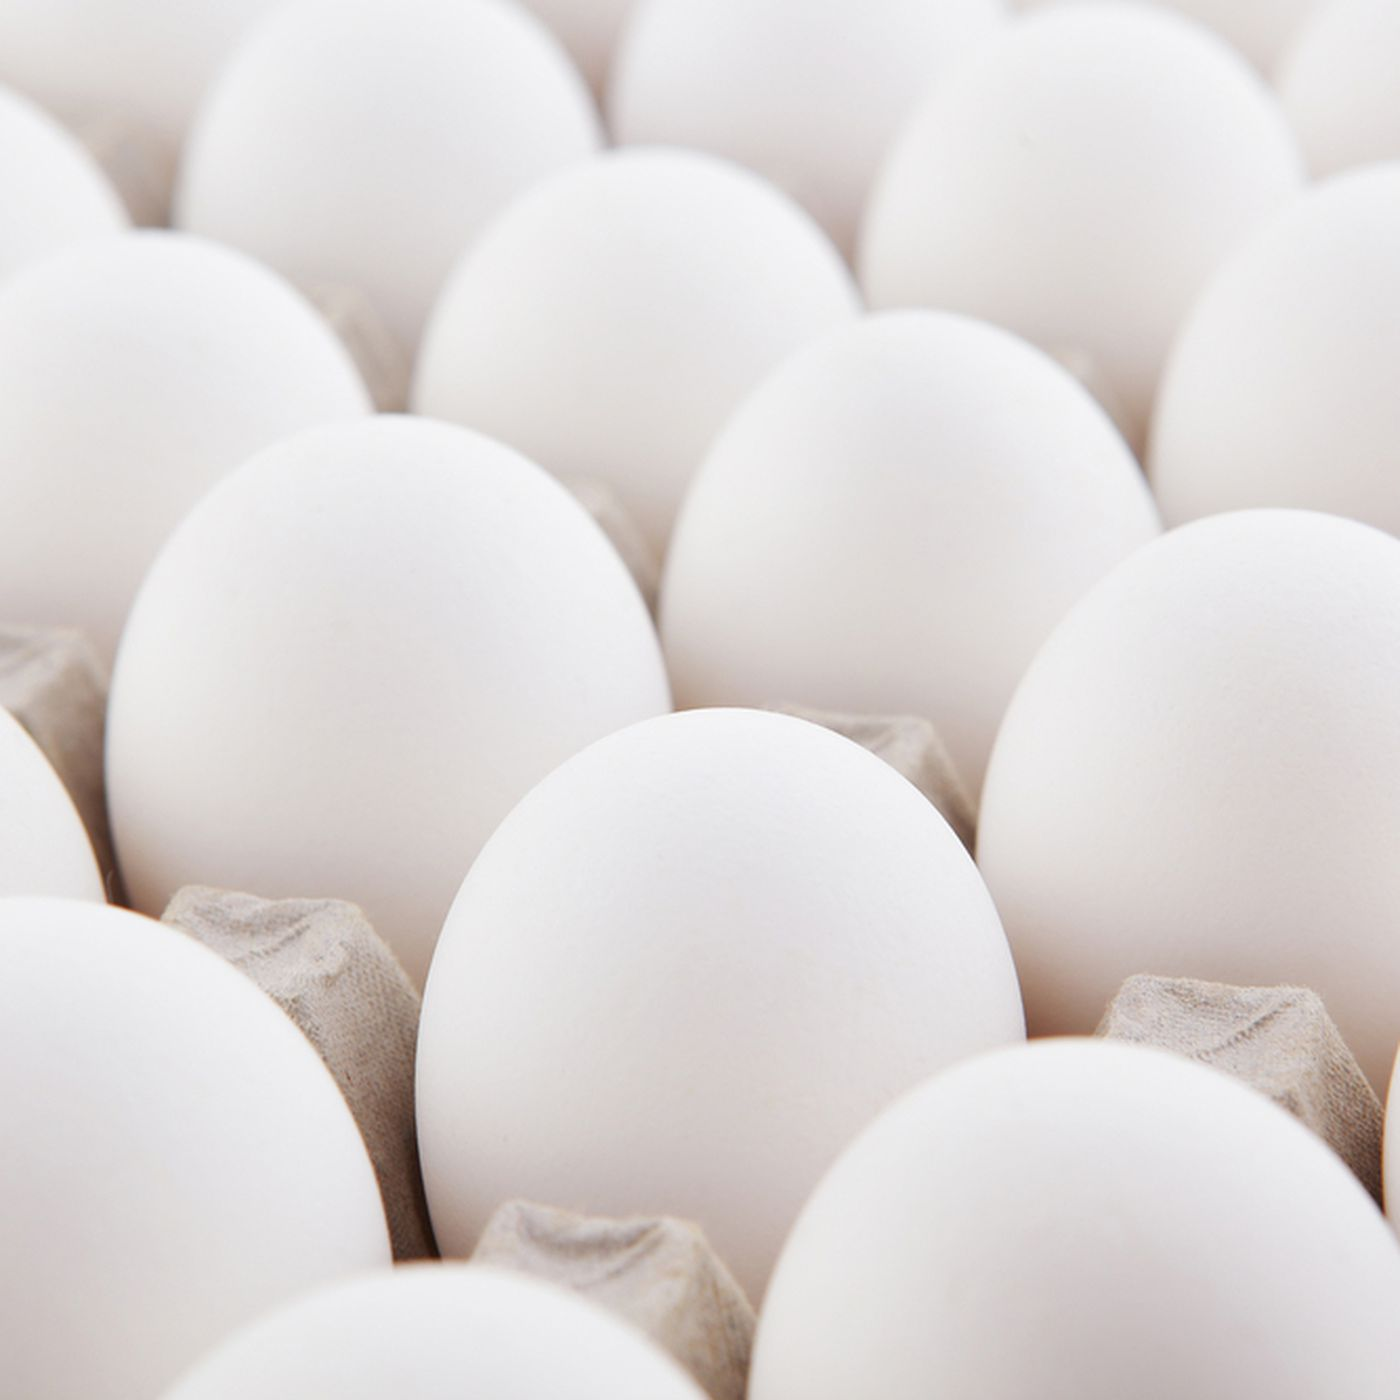 The Japanese Government Has Hatched a Plan to Raise Eggs With ...